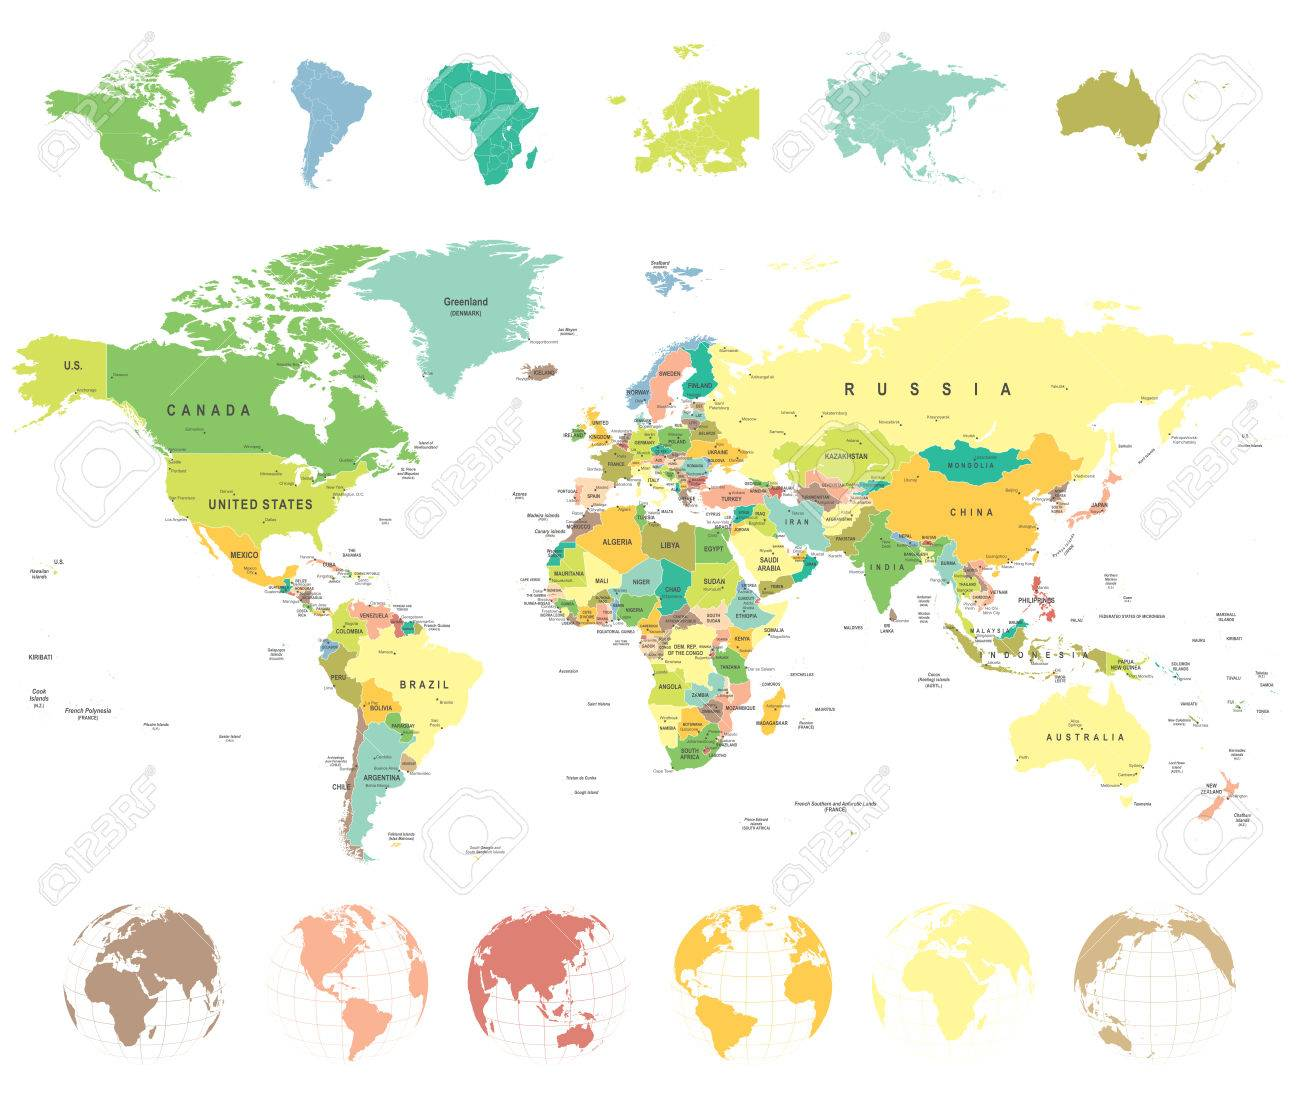 World map and globes highly detailed vector illustration royalty vector world map and globes highly detailed vector illustration gumiabroncs Choice Image